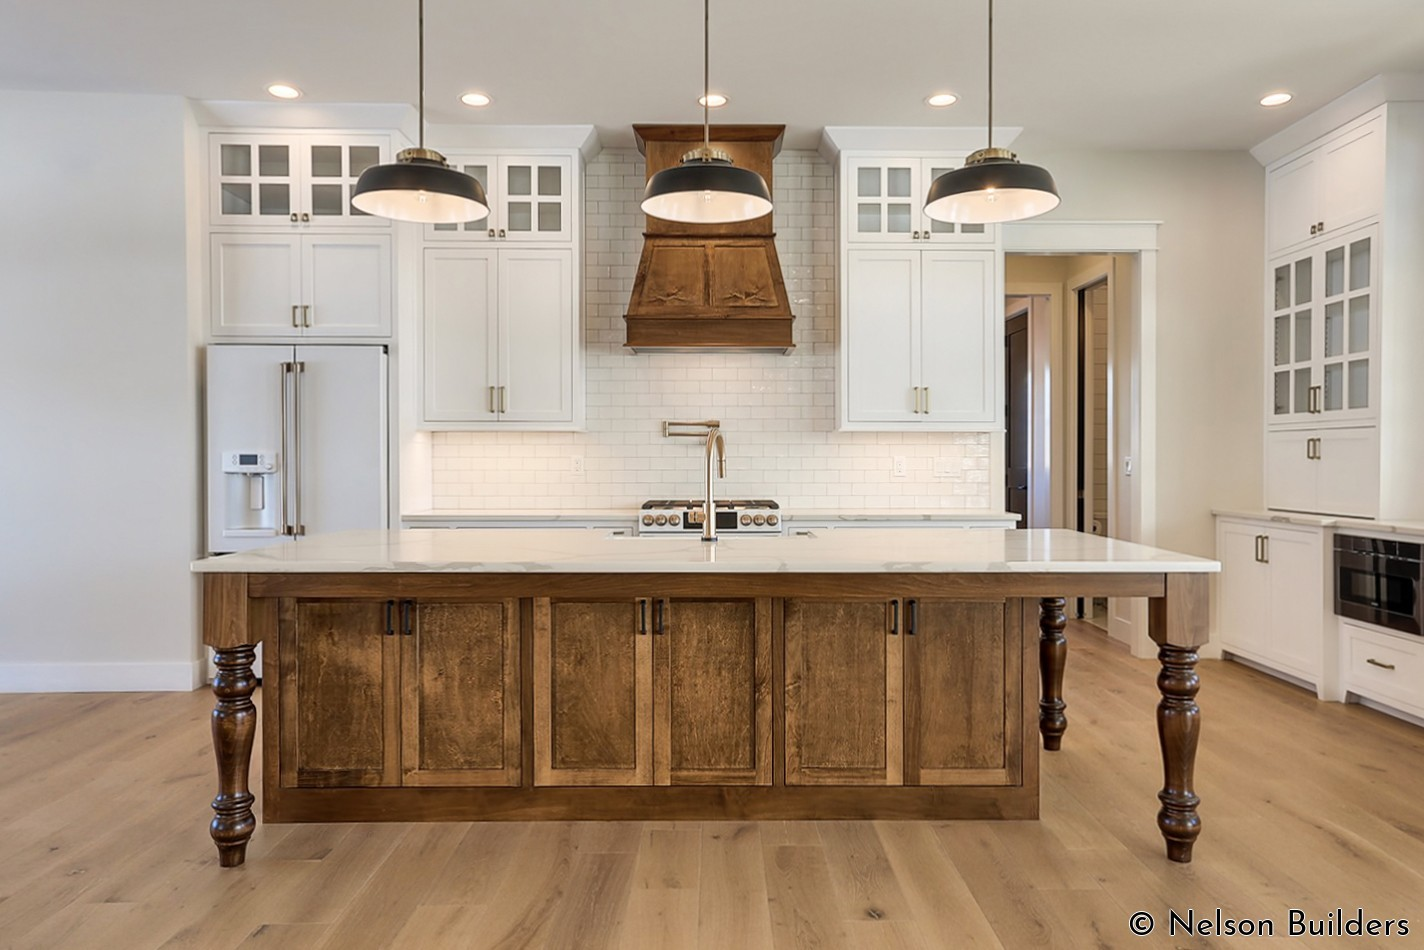 The 10-foot ceilings in this farmhouse kitchen are balanced out with full height cabinetry and 8-foot doors.